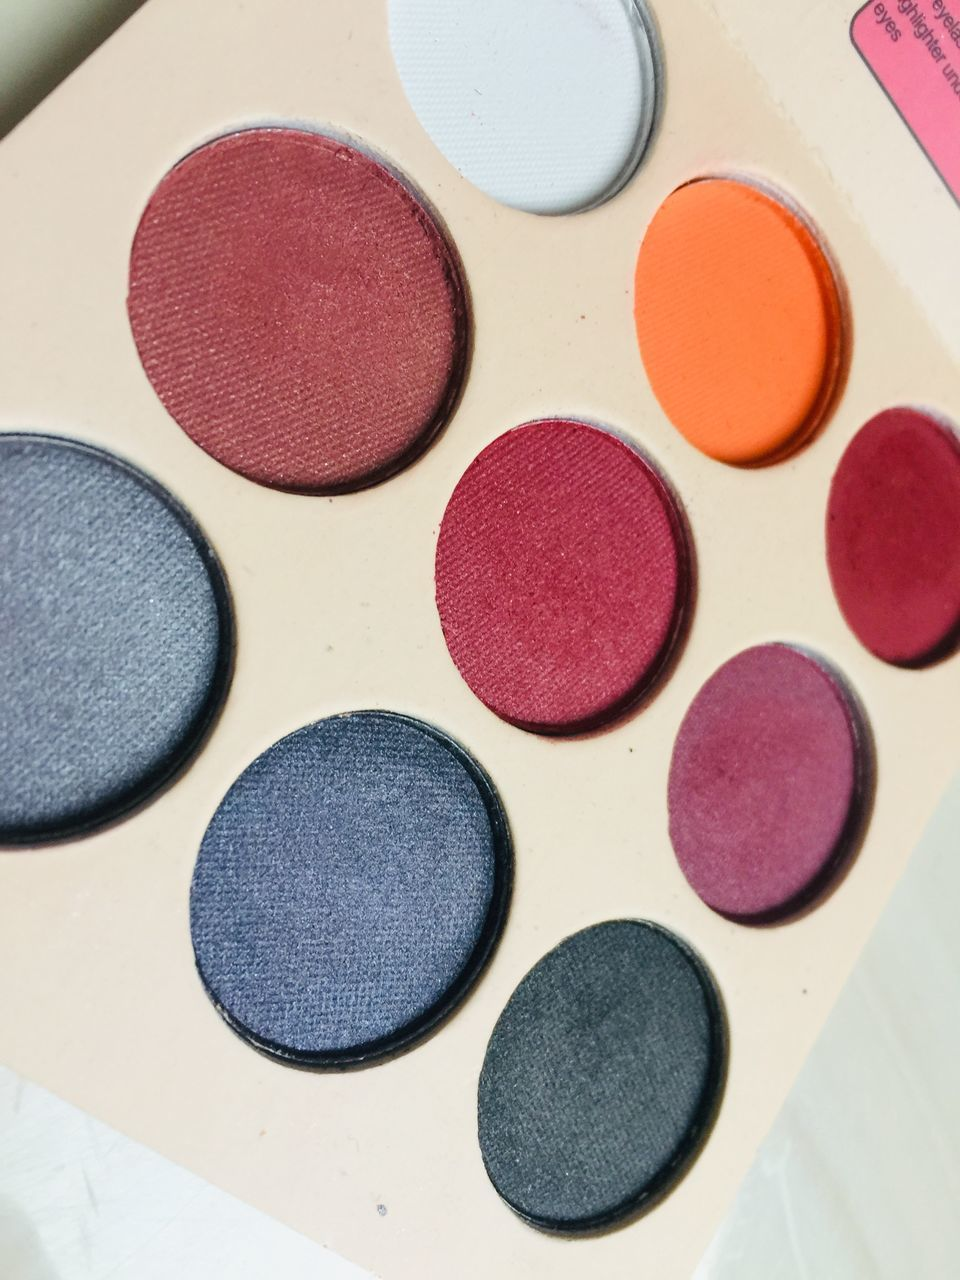 multi colored, circle, indoors, geometric shape, variation, palette, no people, choice, still life, shape, close-up, full frame, eyeshadow, make-up, art and craft, backgrounds, high angle view, red, in a row, creativity, watercolor paints, art and craft equipment